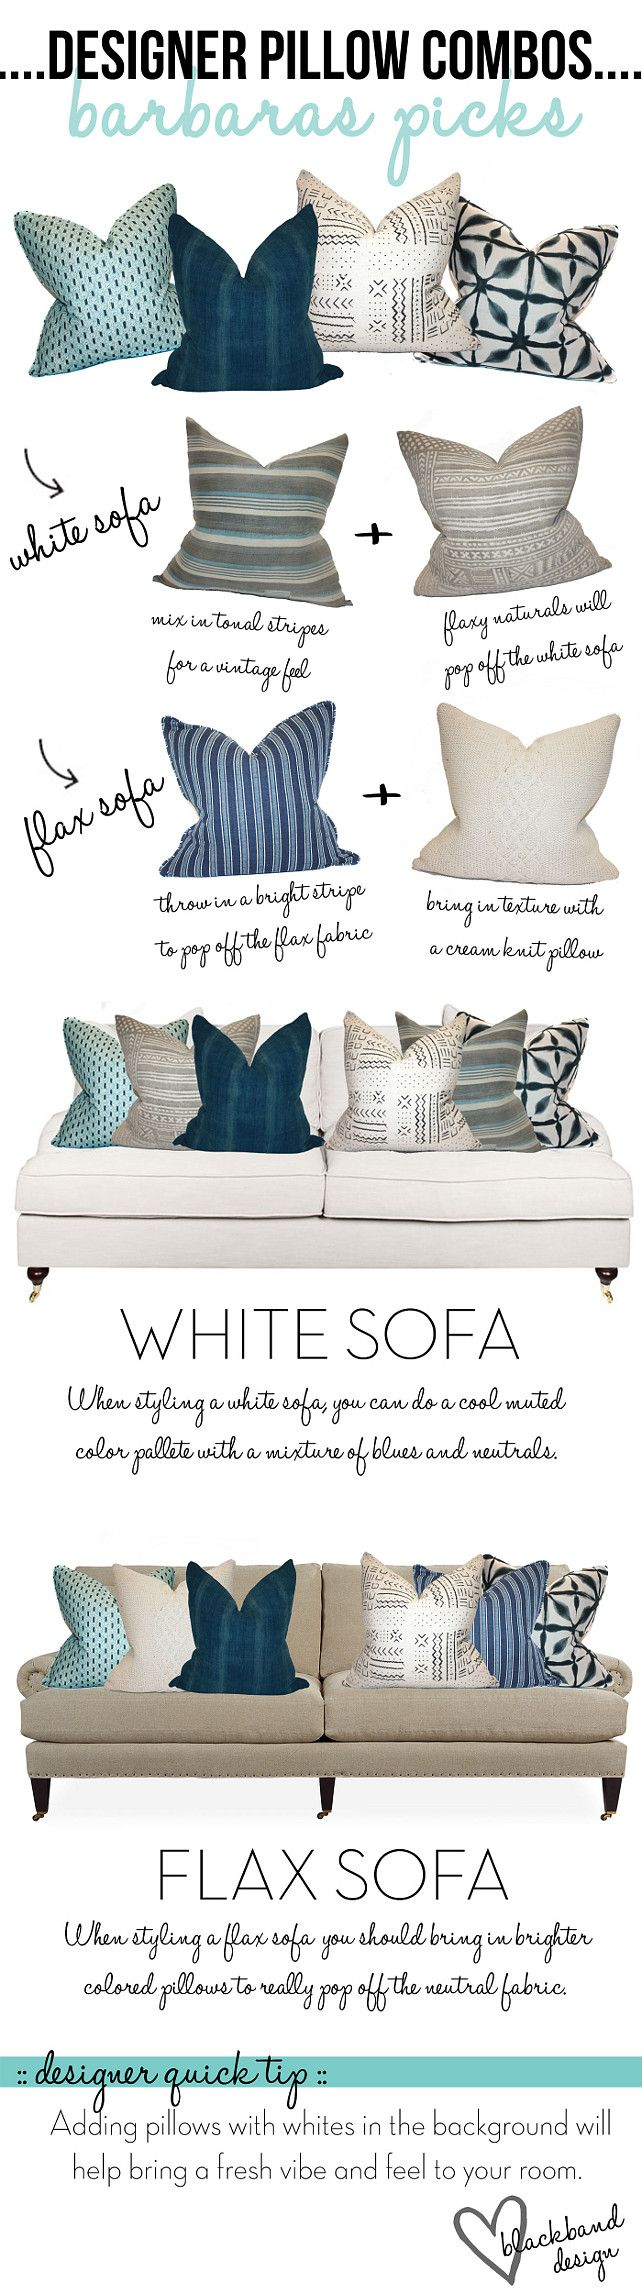 Designer Pillow Combos. Designer Pillow Combo Ideas. Perfect pillow combos for white sofa or flax sofa. #PillowCombos Blackband Design.